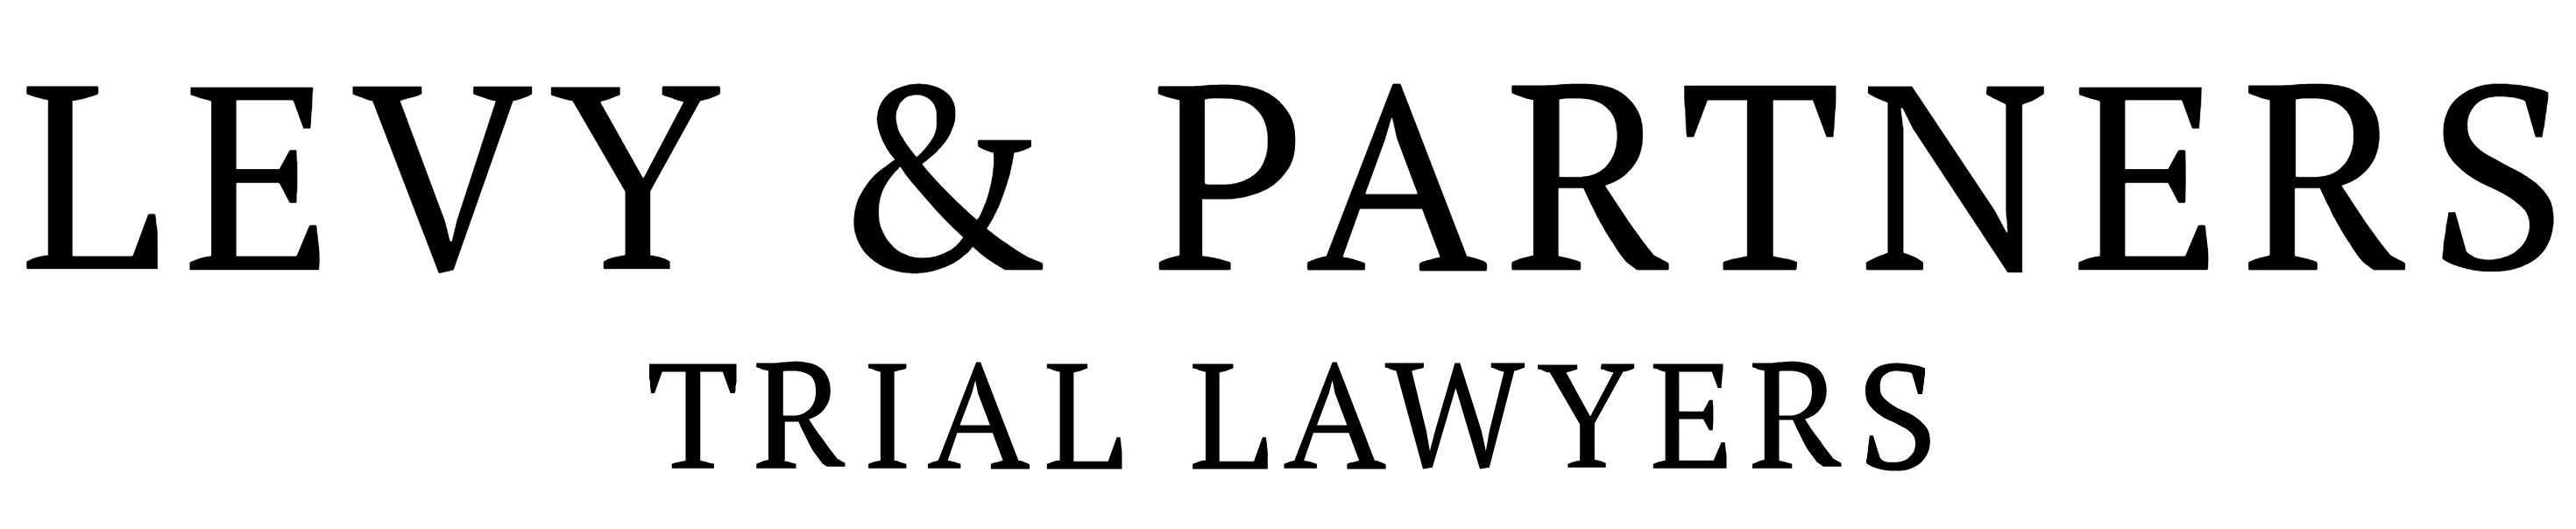 levy and partners logo zantac lawsuit